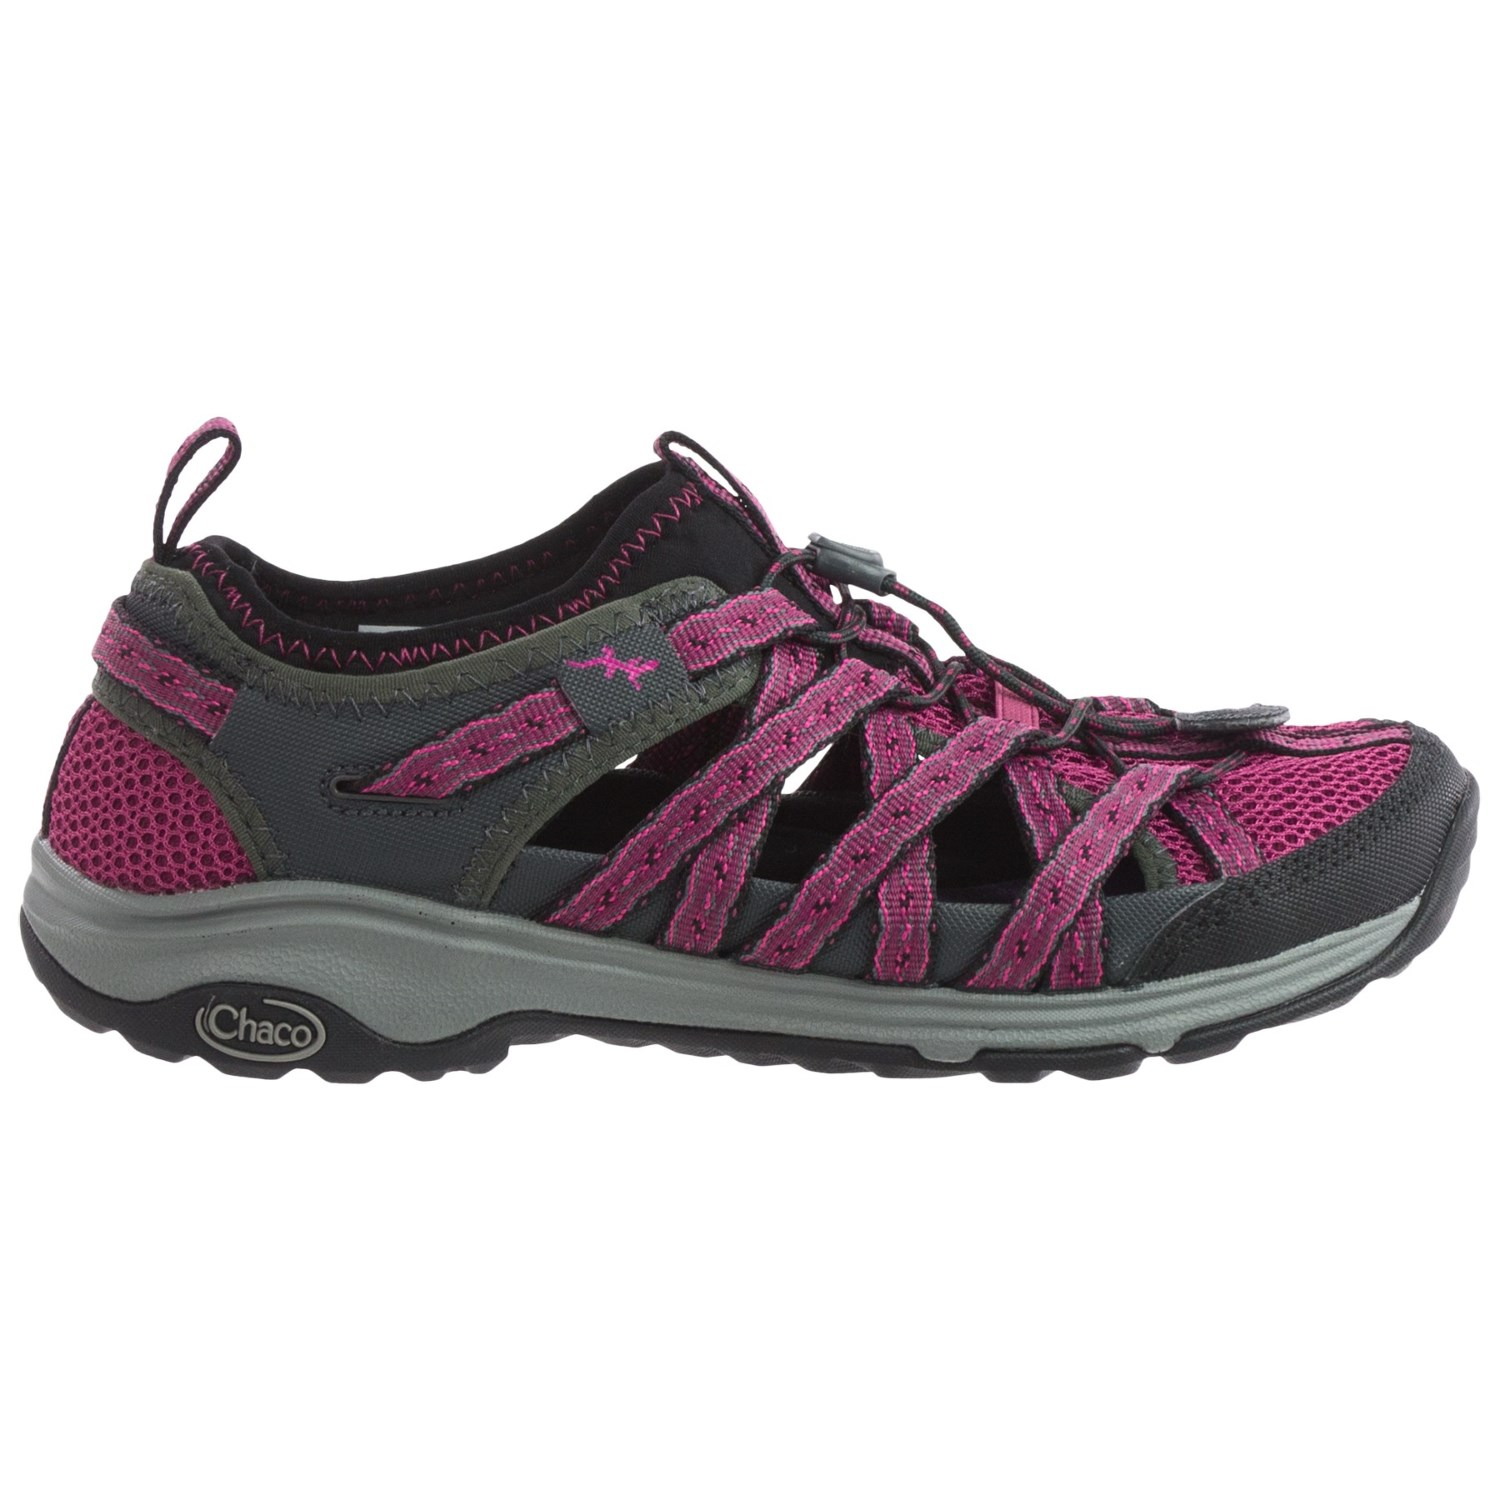 829f9a12ff50 Chaco OutCross Evo 1 Water Shoes (For Women) - Save 45%